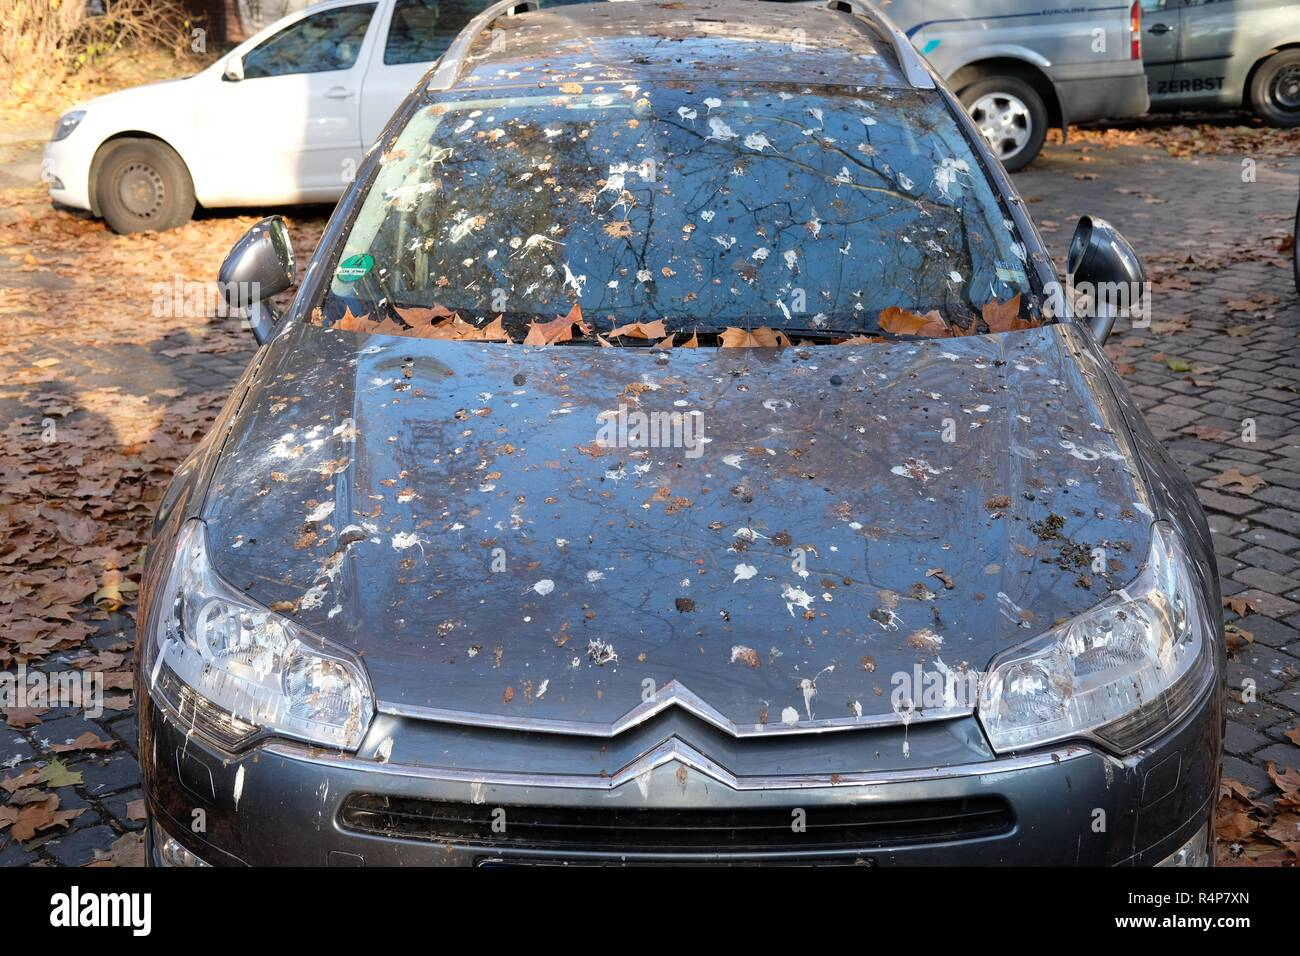 Leipzig, Germany. 28th Nov, 2018. A car covered in bird droppings stands under trees. The driver has parked under plane trees, which are used by crows as sleeping places. Large flocks of these birds from Northern and Eastern Europe spend the winter here and gather every evening to spend the night together. Credit: Sebastian Willnow/dpa-Zentralbild/ZB/dpa/Alamy Live News - Stock Image